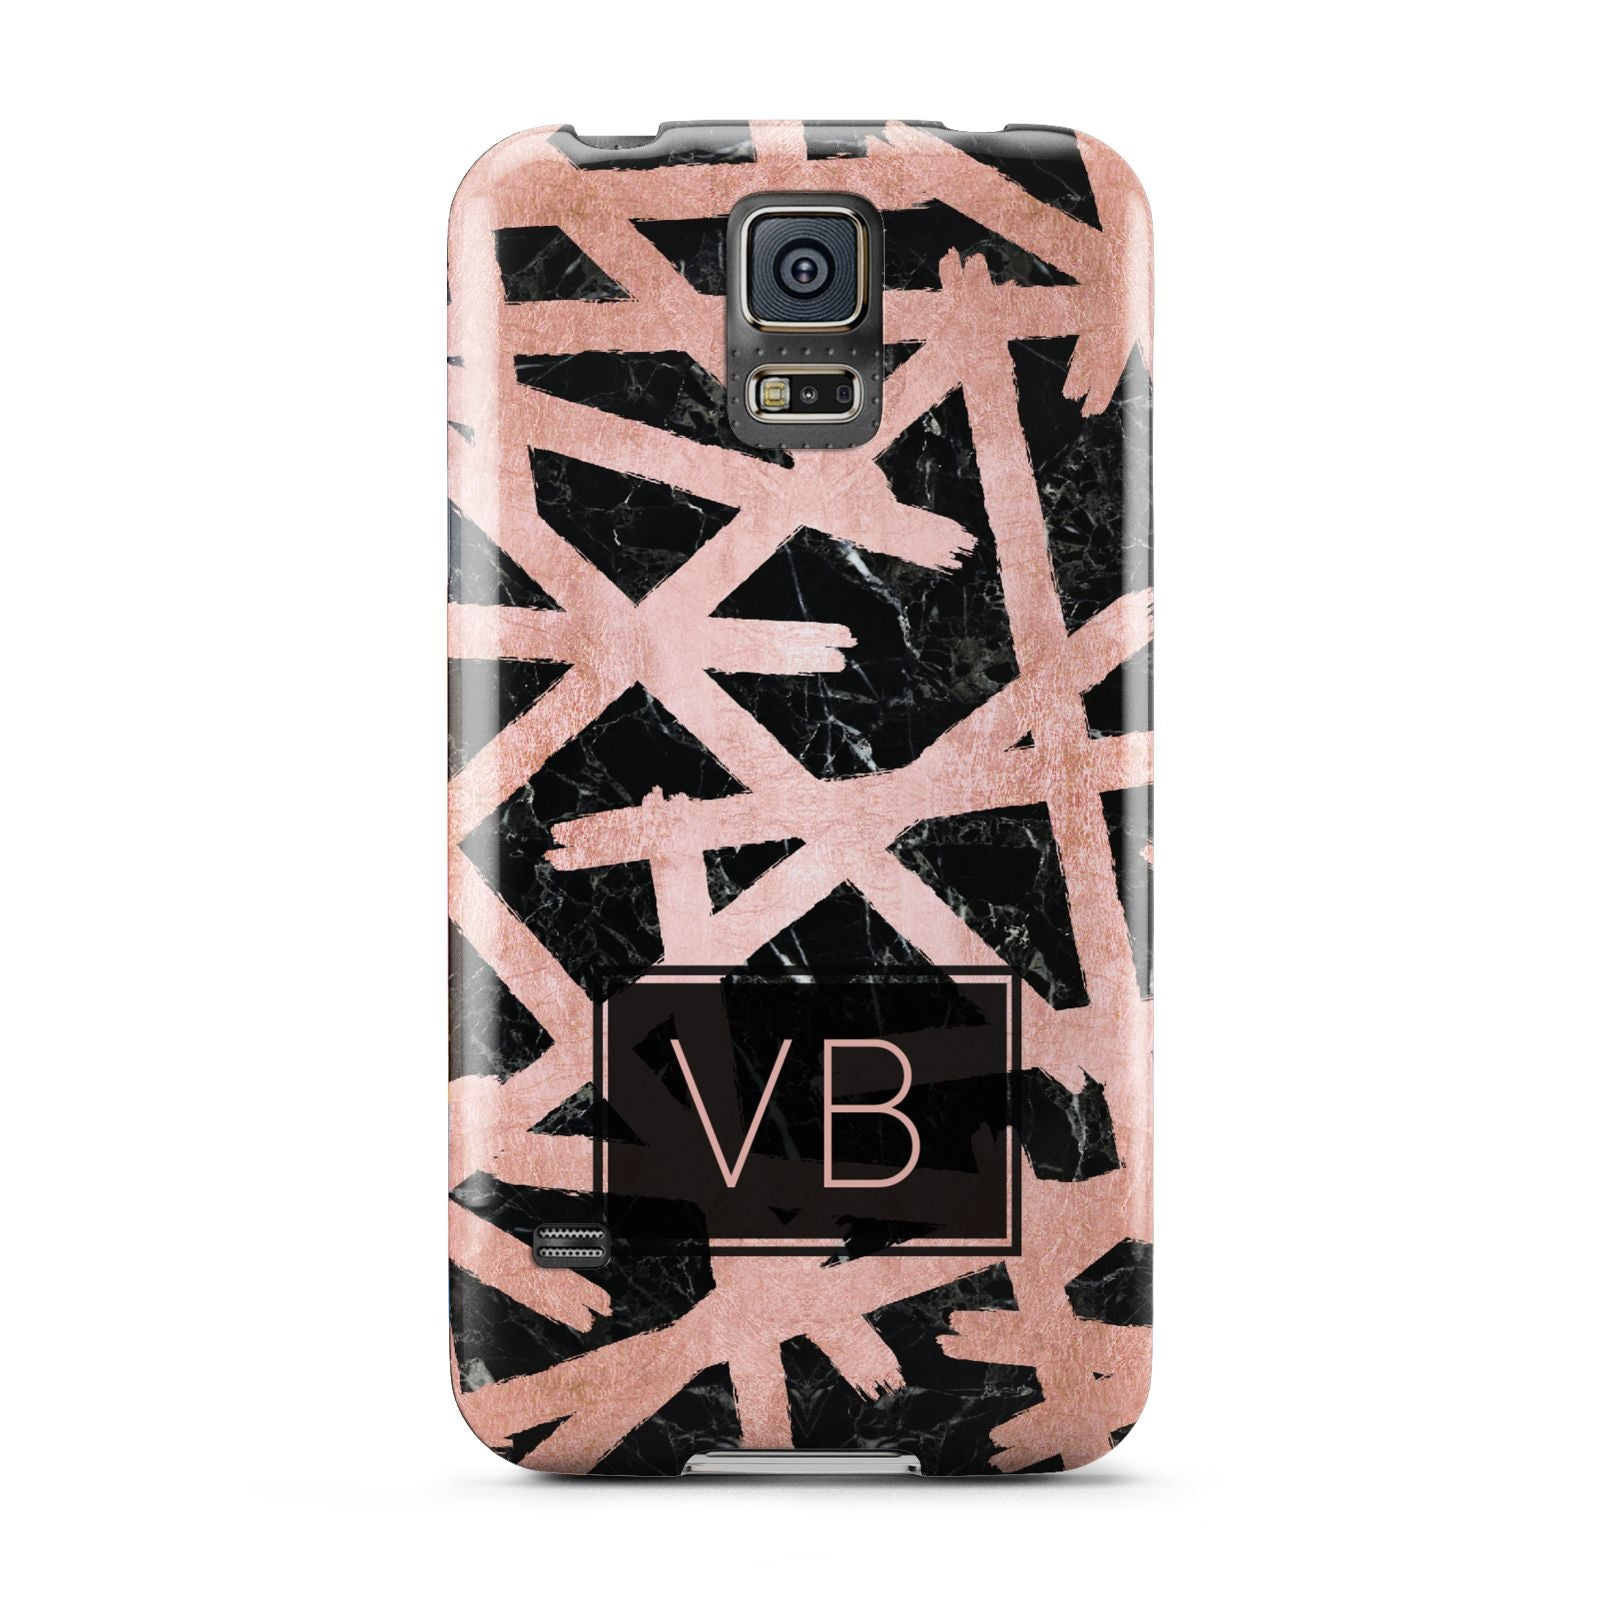 Personalised Rose Gold Effect Samsung Galaxy S5 Case